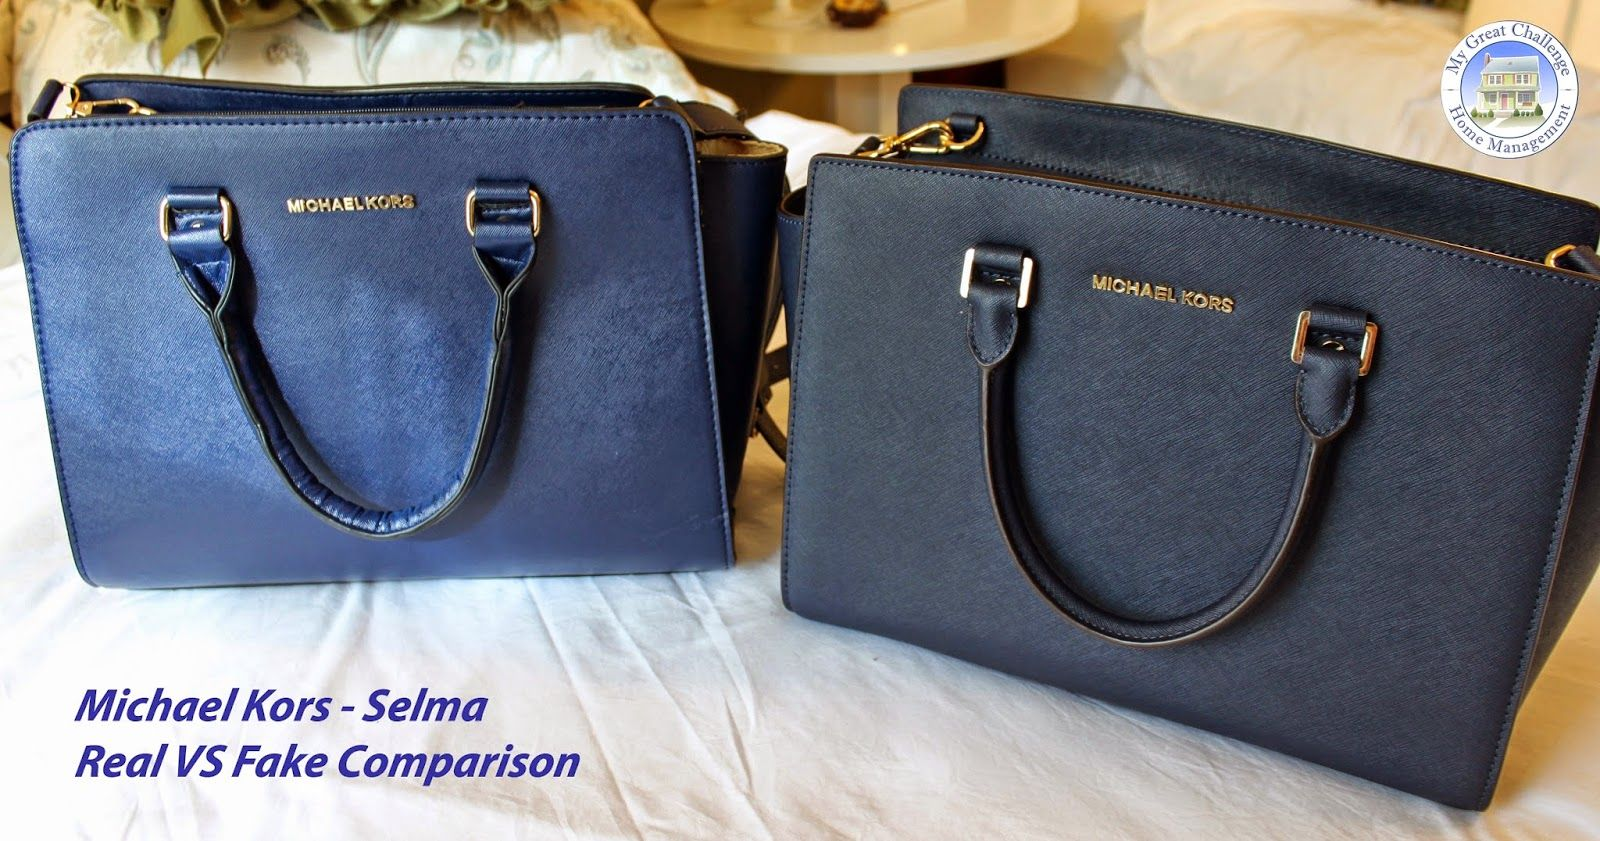 Michael Kors Selma Fake VS. Real Comparison | Handbags